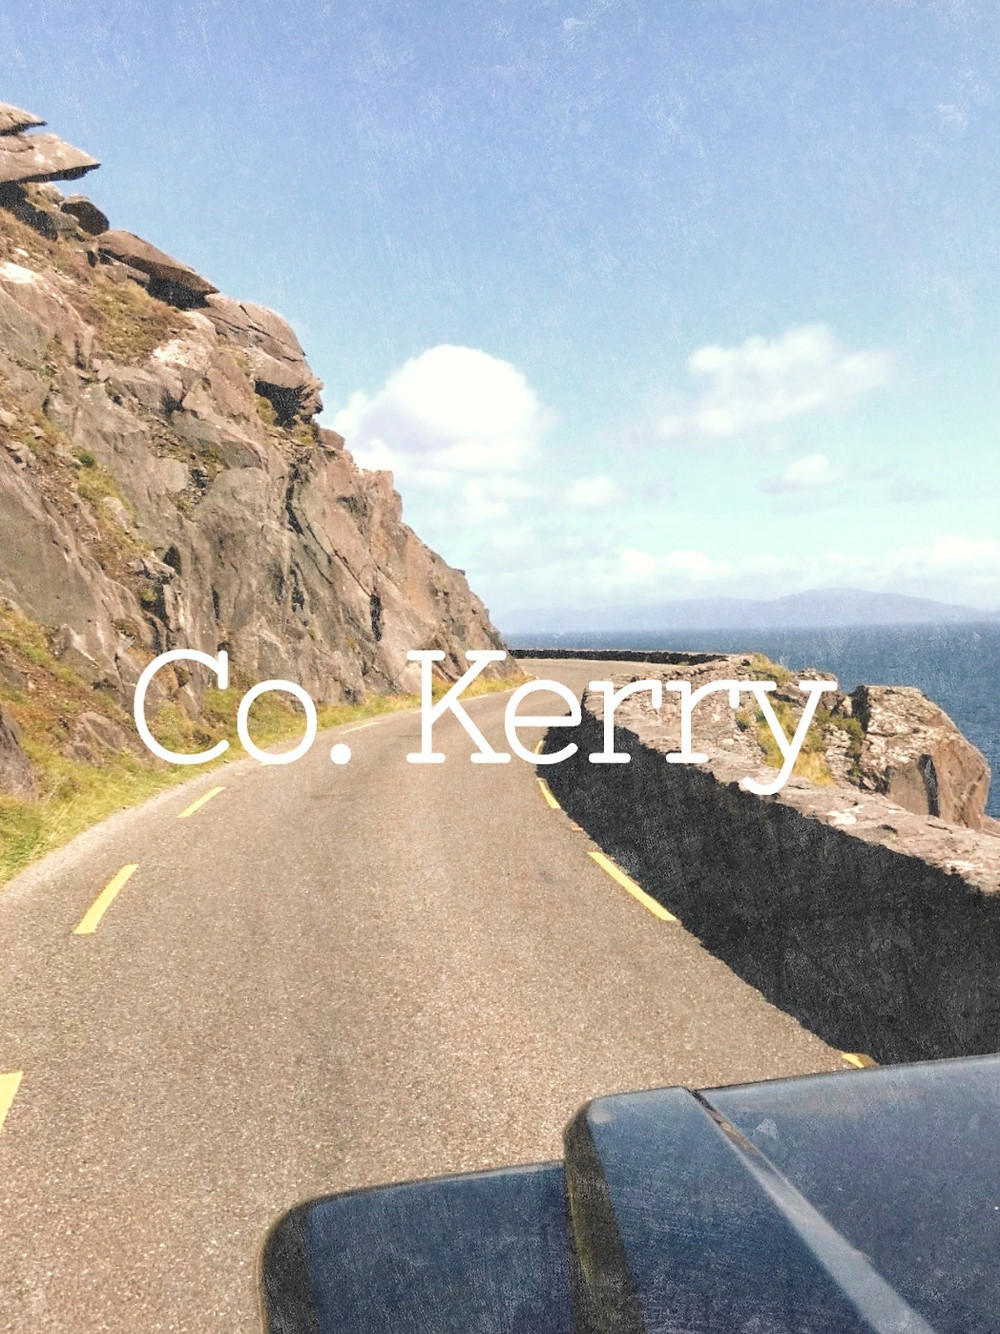 Coopers Travels - Dogfatherz Kerry